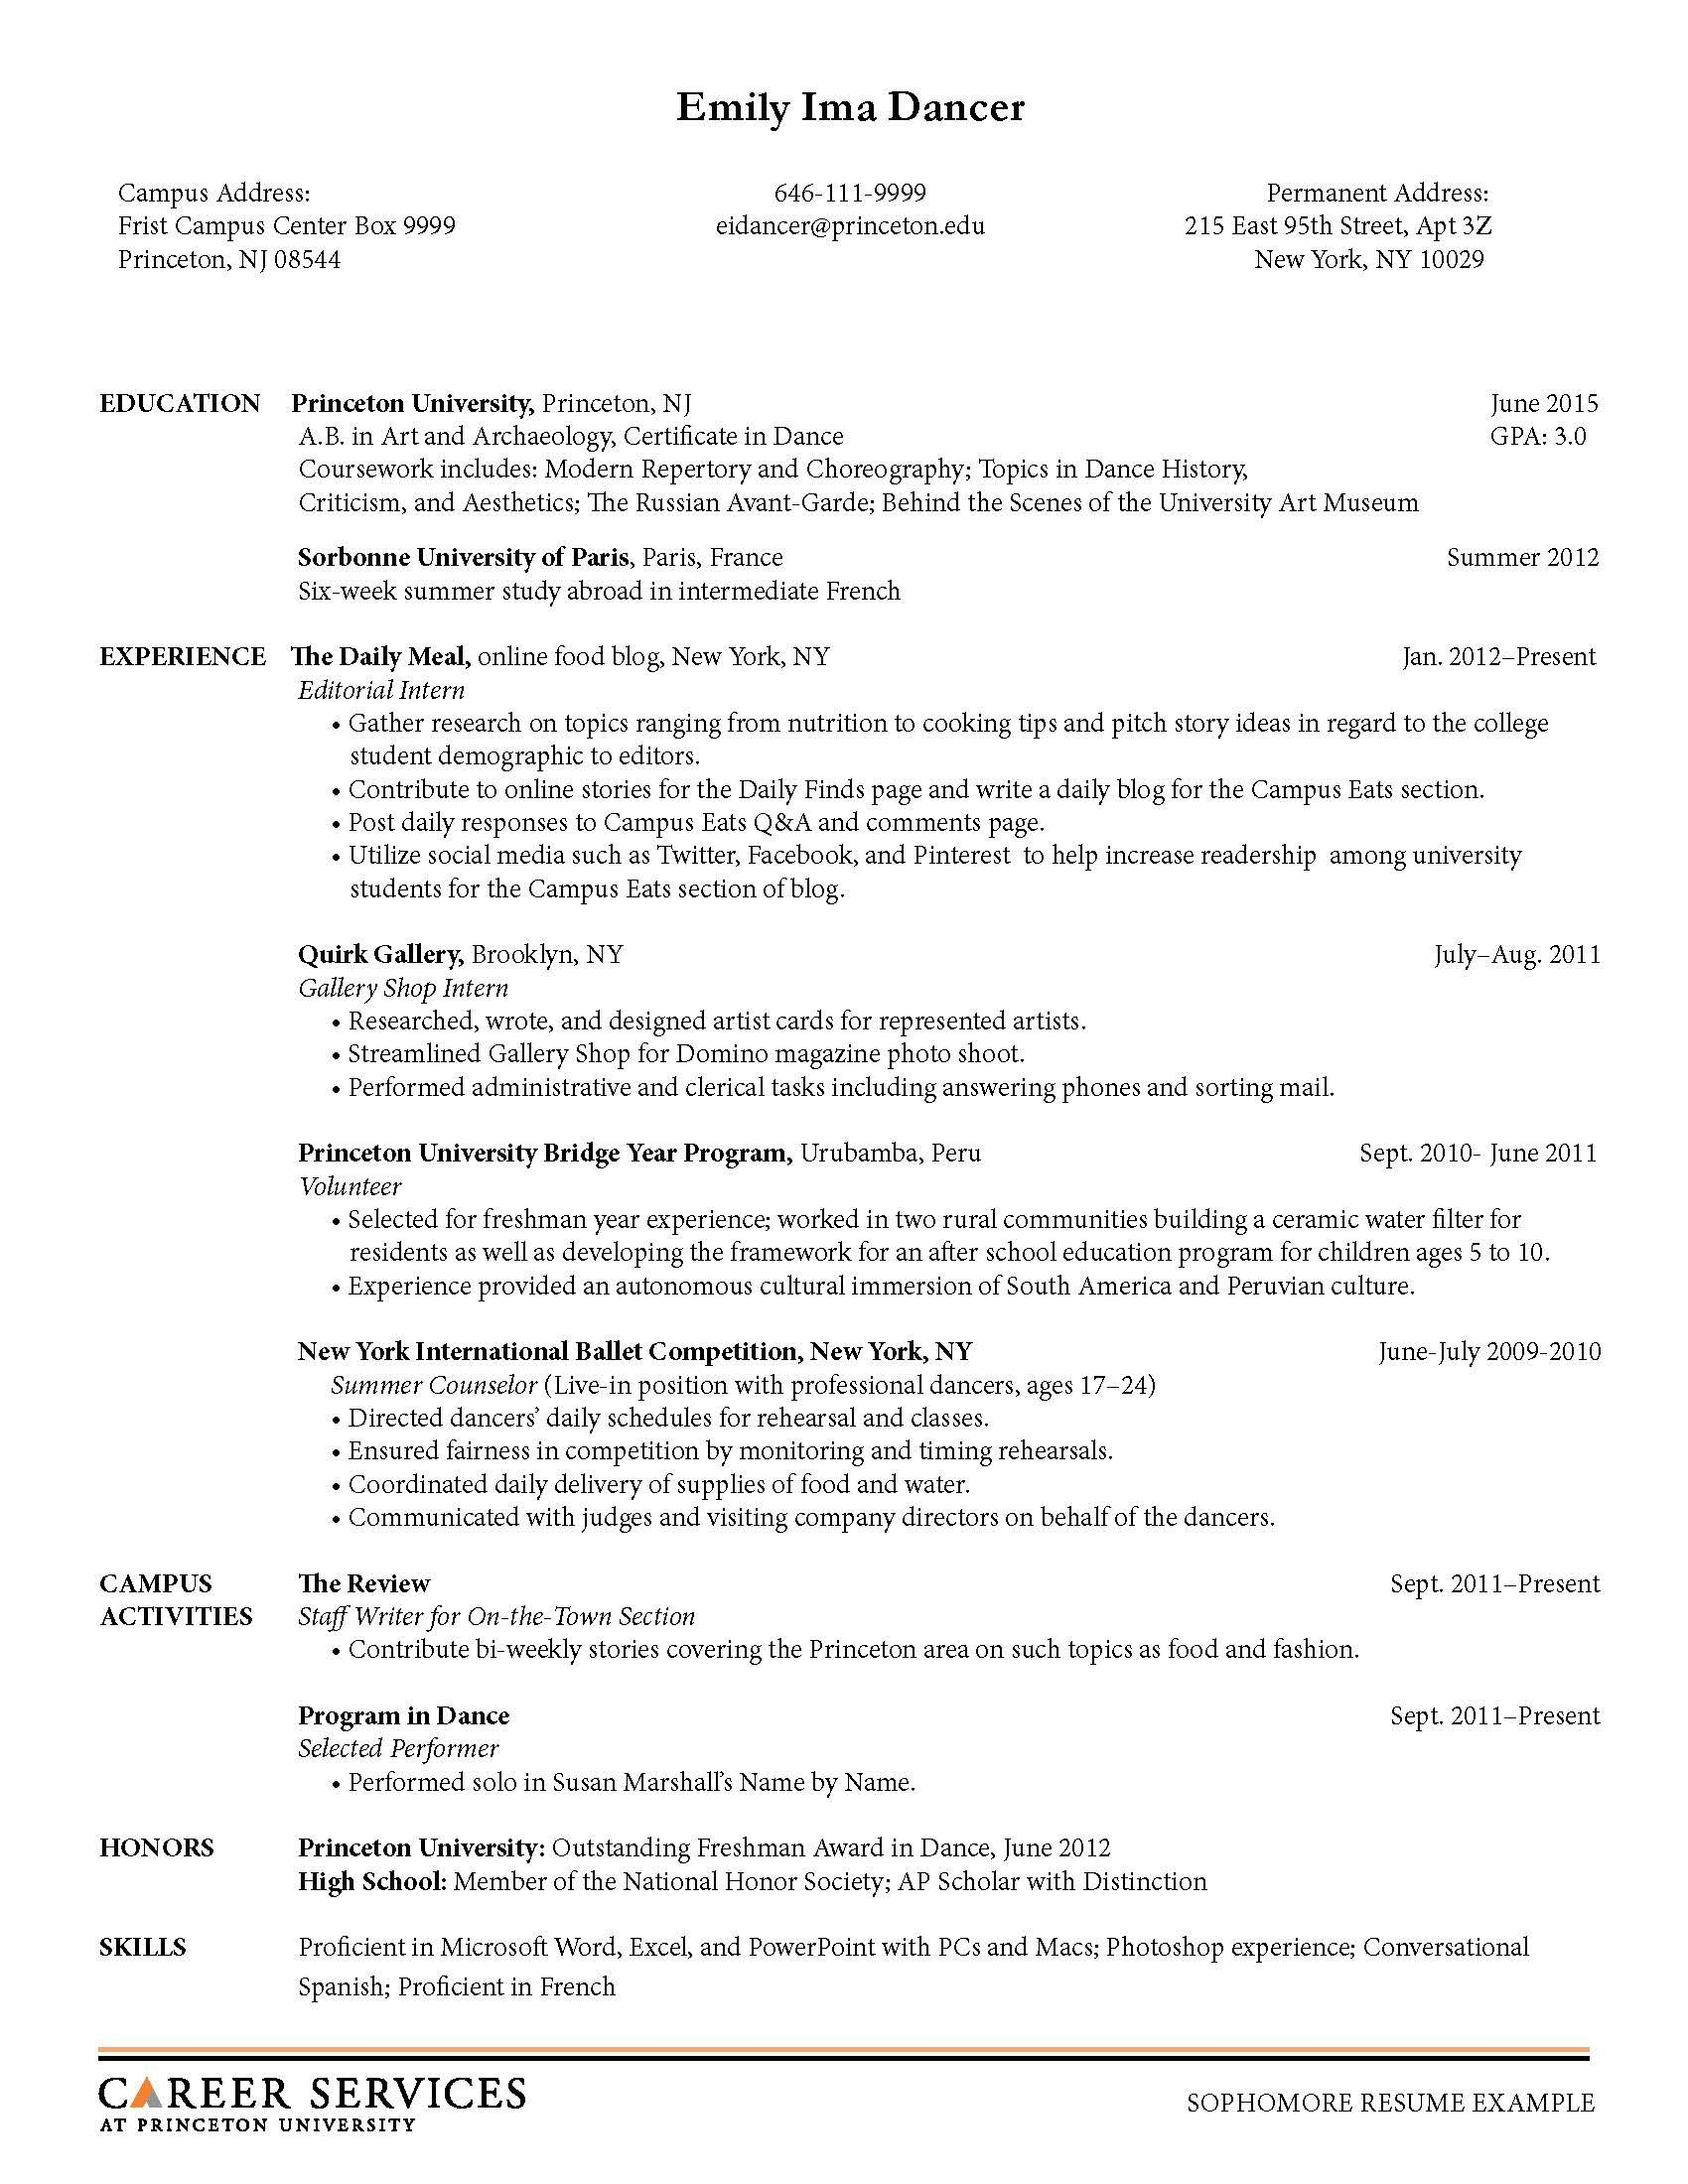 Opposenewapstandardsus  Scenic Sample Resume Resume And Career On Pinterest With Gorgeous Receptionist Skills For Resume Besides Resume On Microsoft Word Furthermore Should I Include References On My Resume With Endearing Retail Management Resume Examples Also Resume Templ In Addition Resume Free Template And A Great Resume As Well As How Many Pages Resume Additionally Excel Vba On Error Resume Next From Pinterestcom With Opposenewapstandardsus  Gorgeous Sample Resume Resume And Career On Pinterest With Endearing Receptionist Skills For Resume Besides Resume On Microsoft Word Furthermore Should I Include References On My Resume And Scenic Retail Management Resume Examples Also Resume Templ In Addition Resume Free Template From Pinterestcom